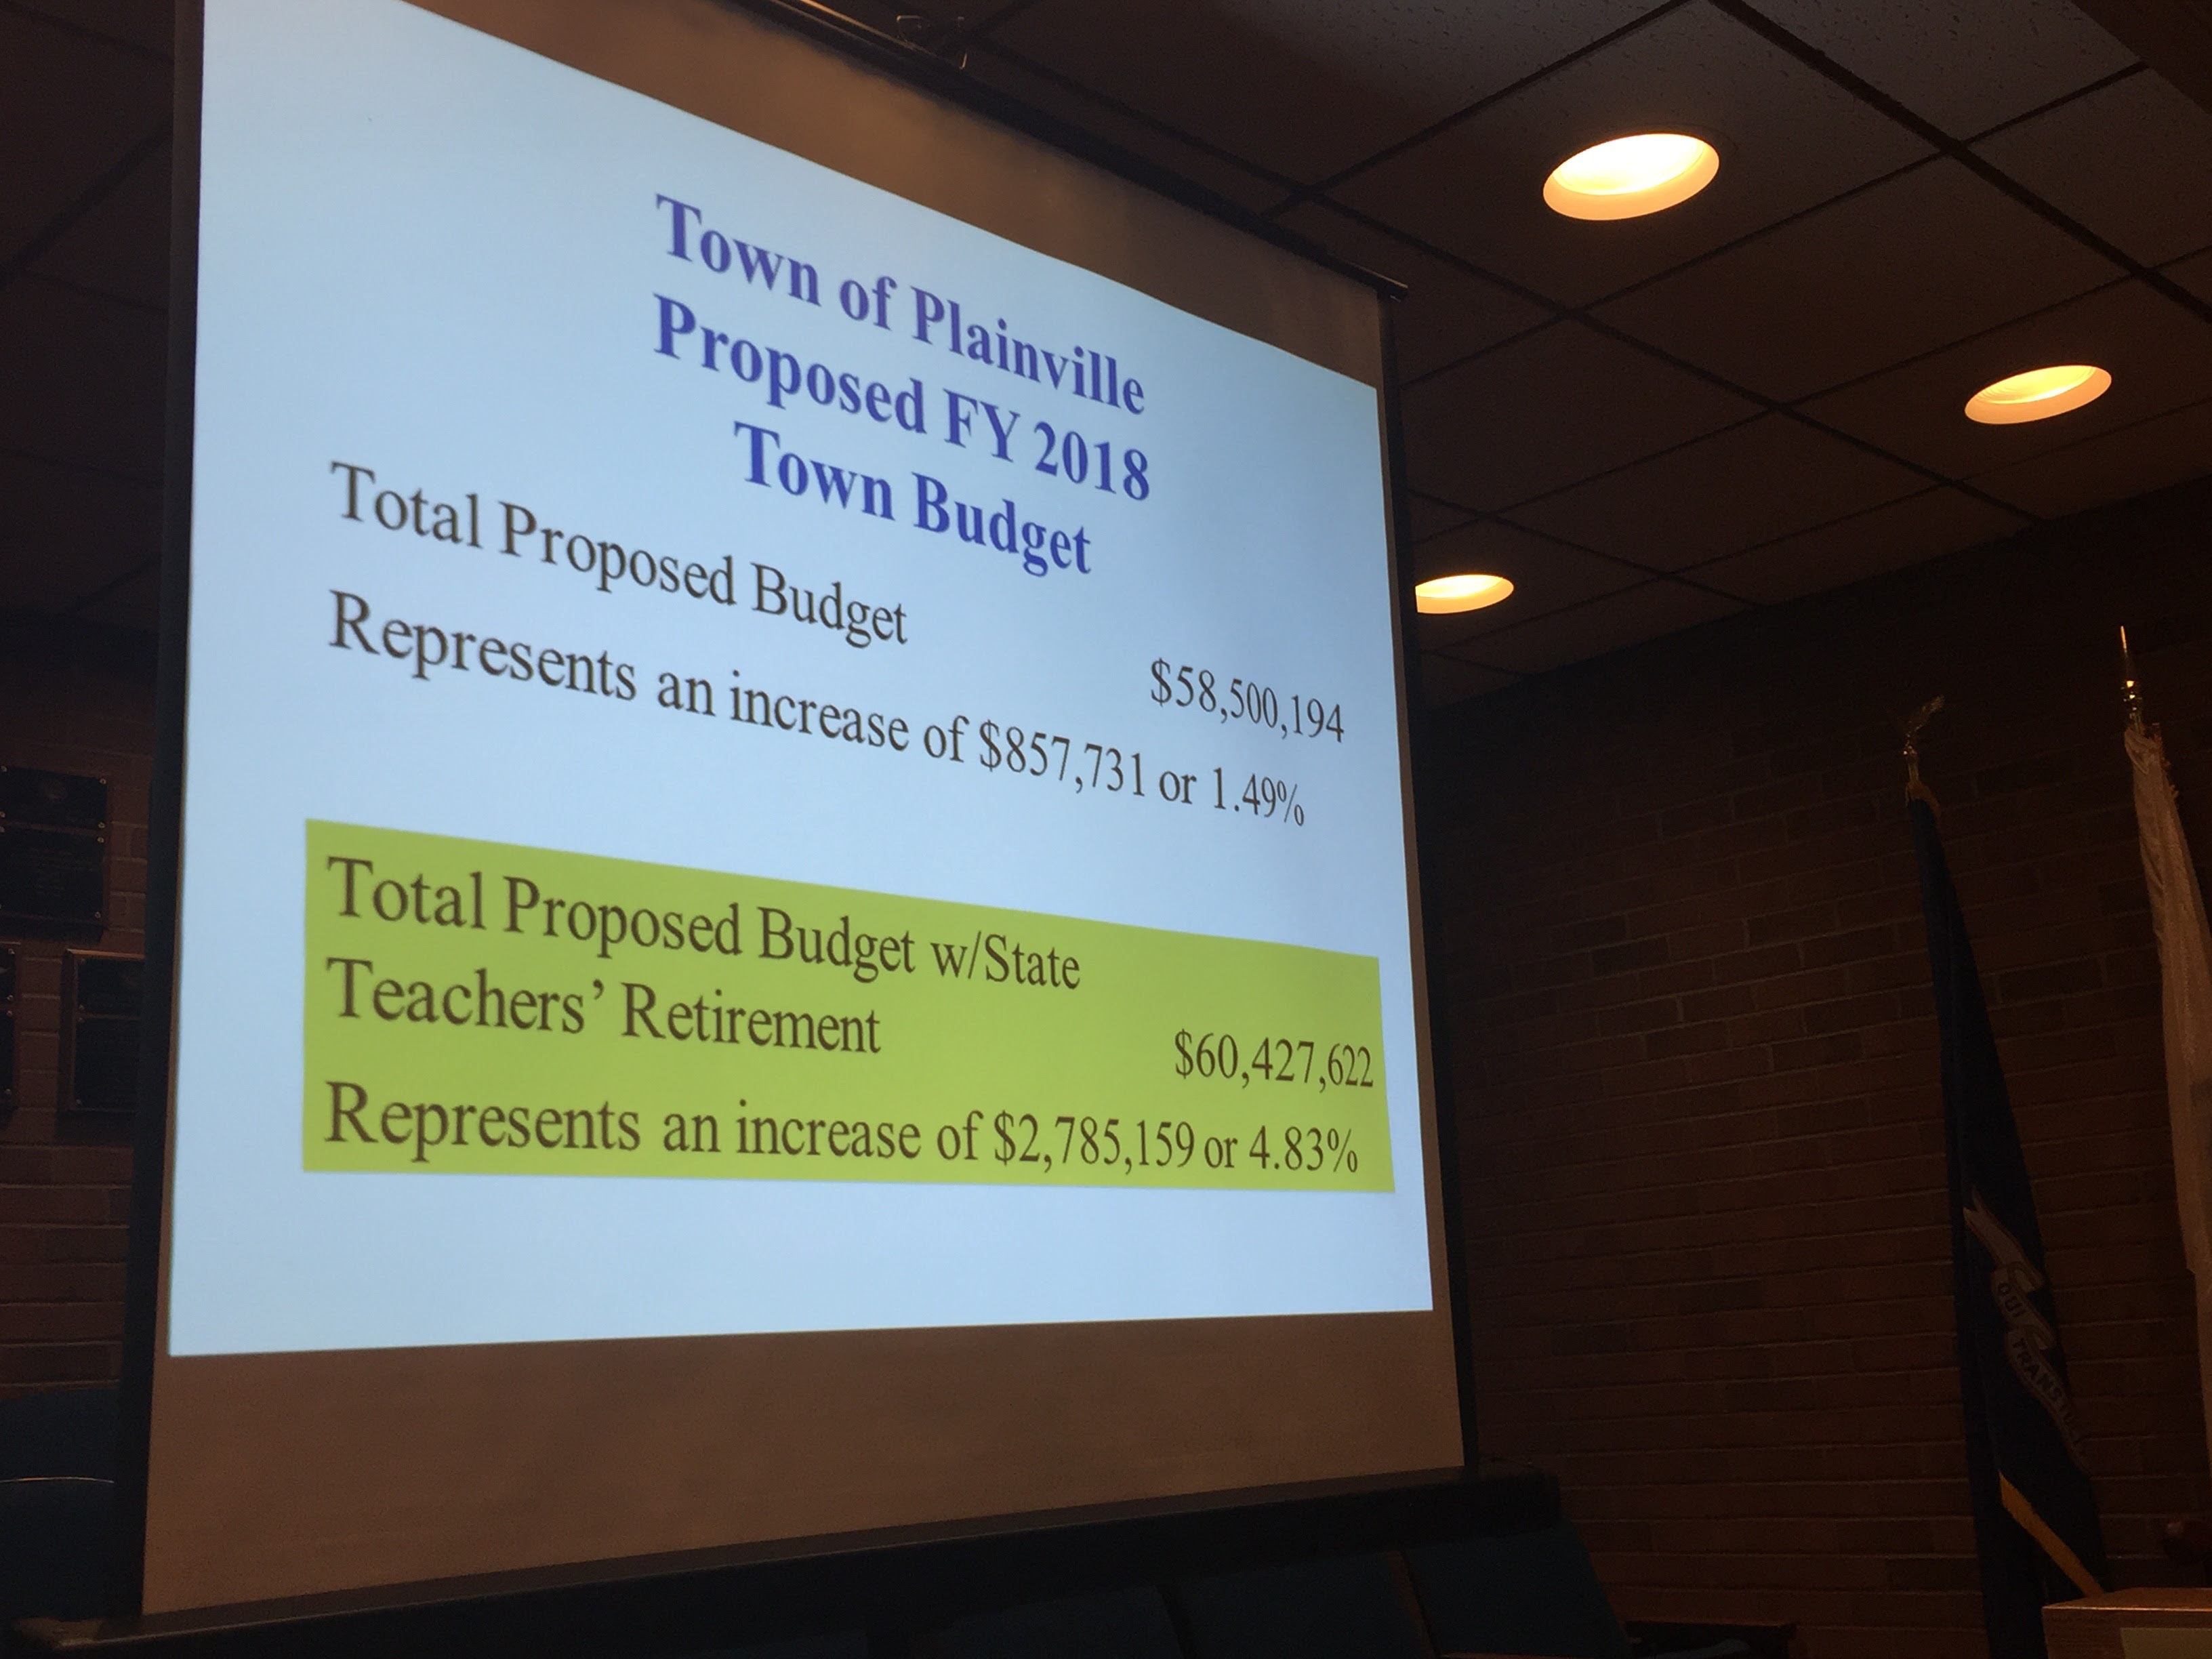 The Town Manager presented the annual town budget to the Town Council at a special meeting, March 2. |Ashley Kus, The Plainville Citizen